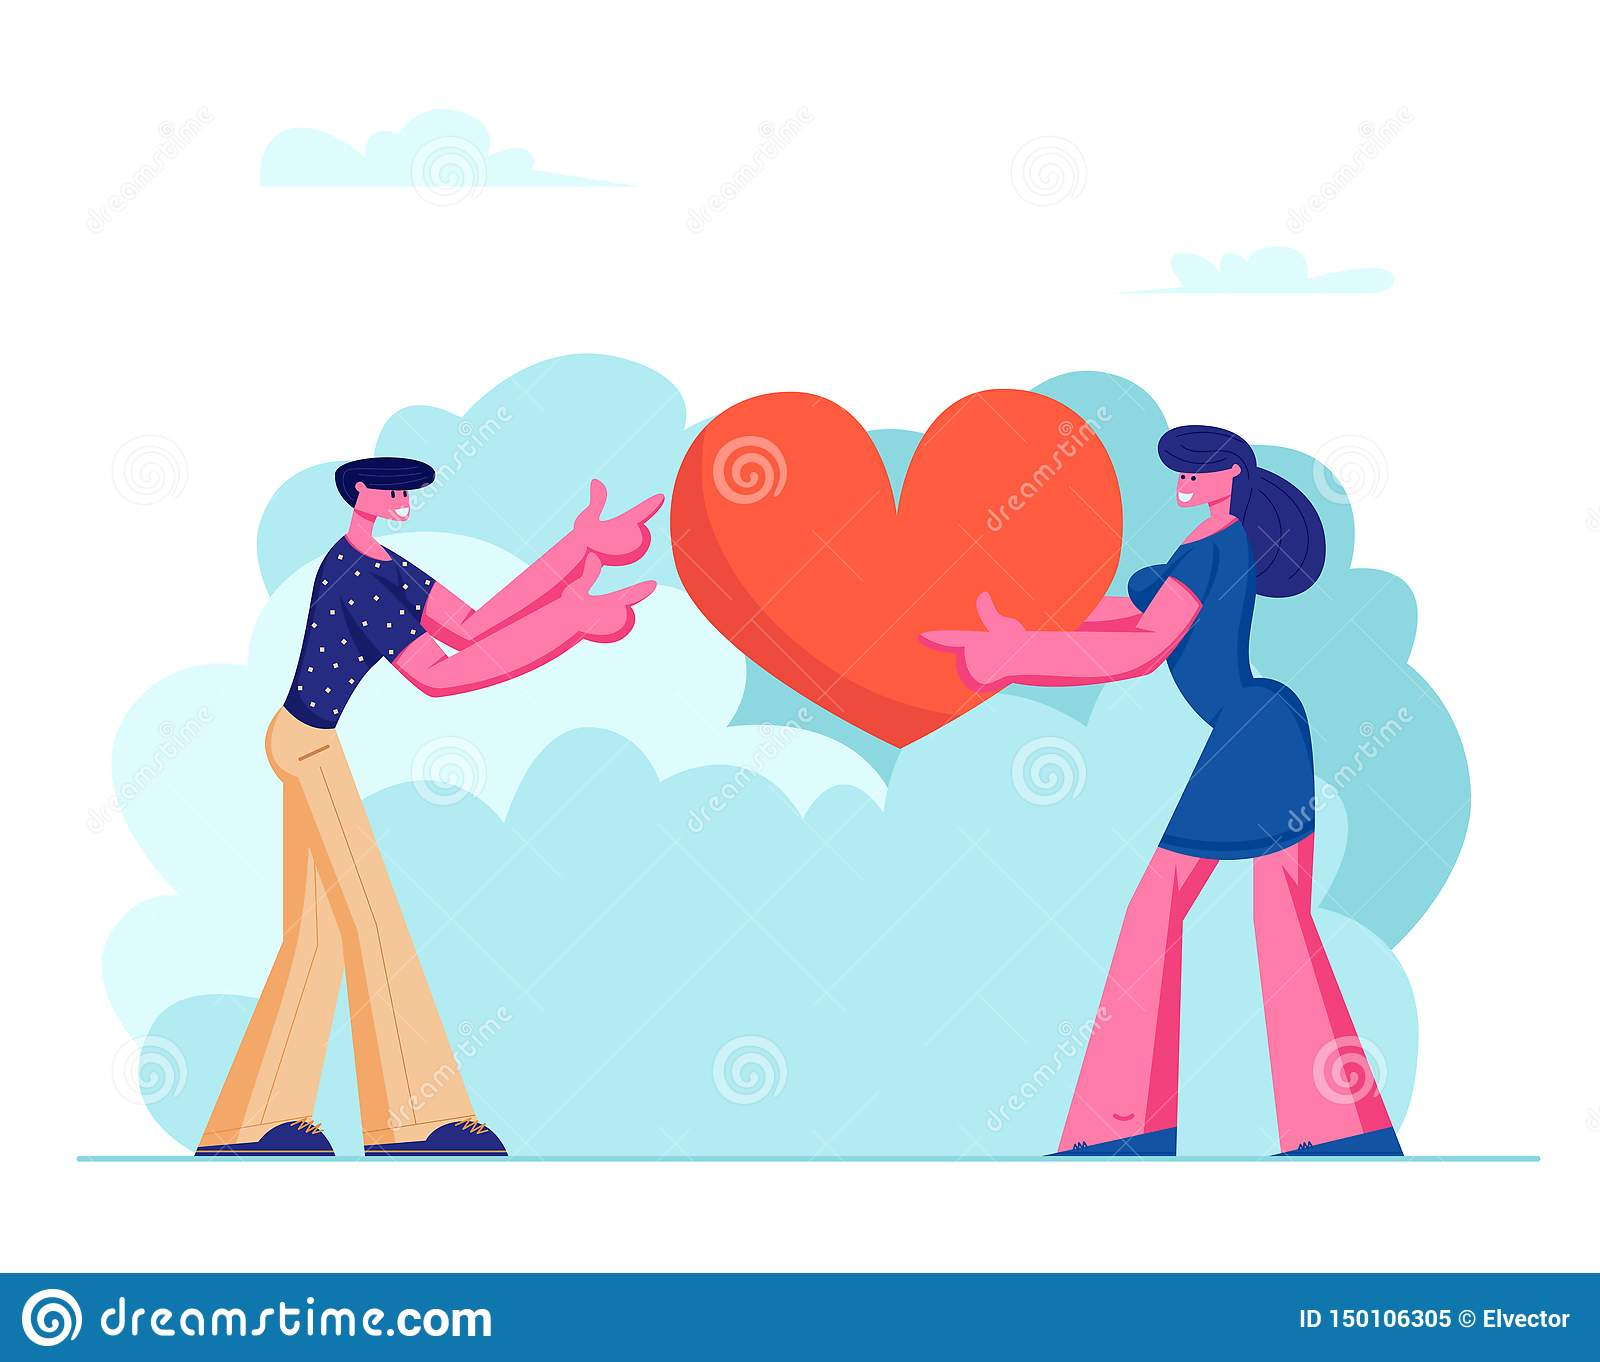 Loving Couple Share Huge Red Heart to Each Other. Human Relations, Love, Romantic Dating. Male and Female Character Spending Time